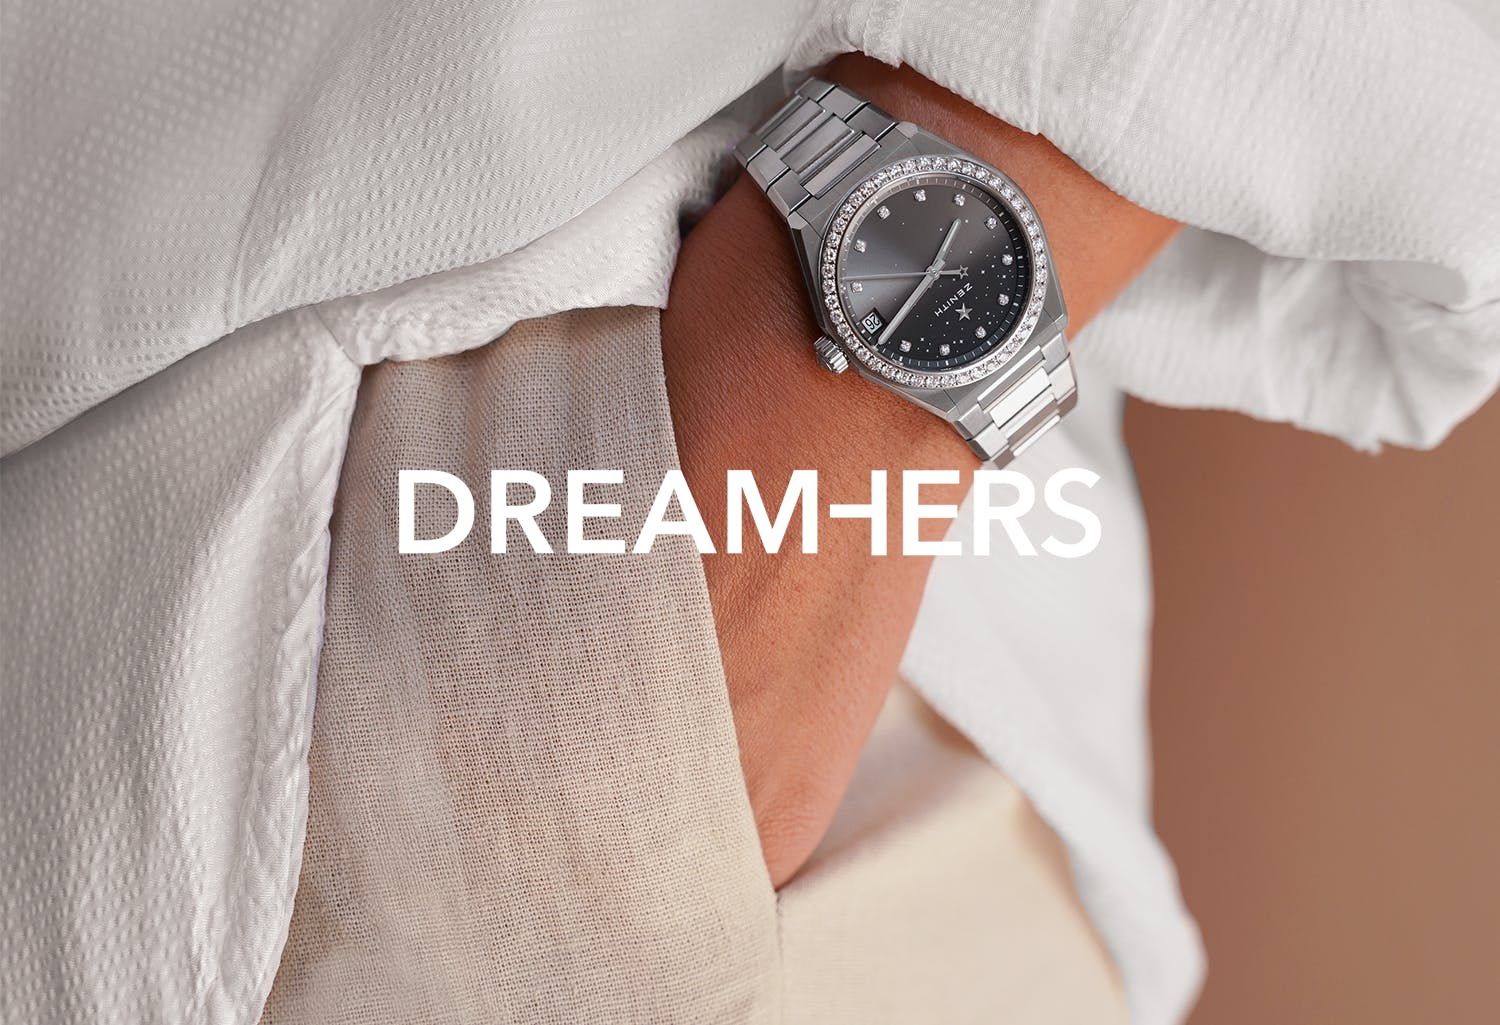 ZENITH DREAMHERS - CHAPTER II